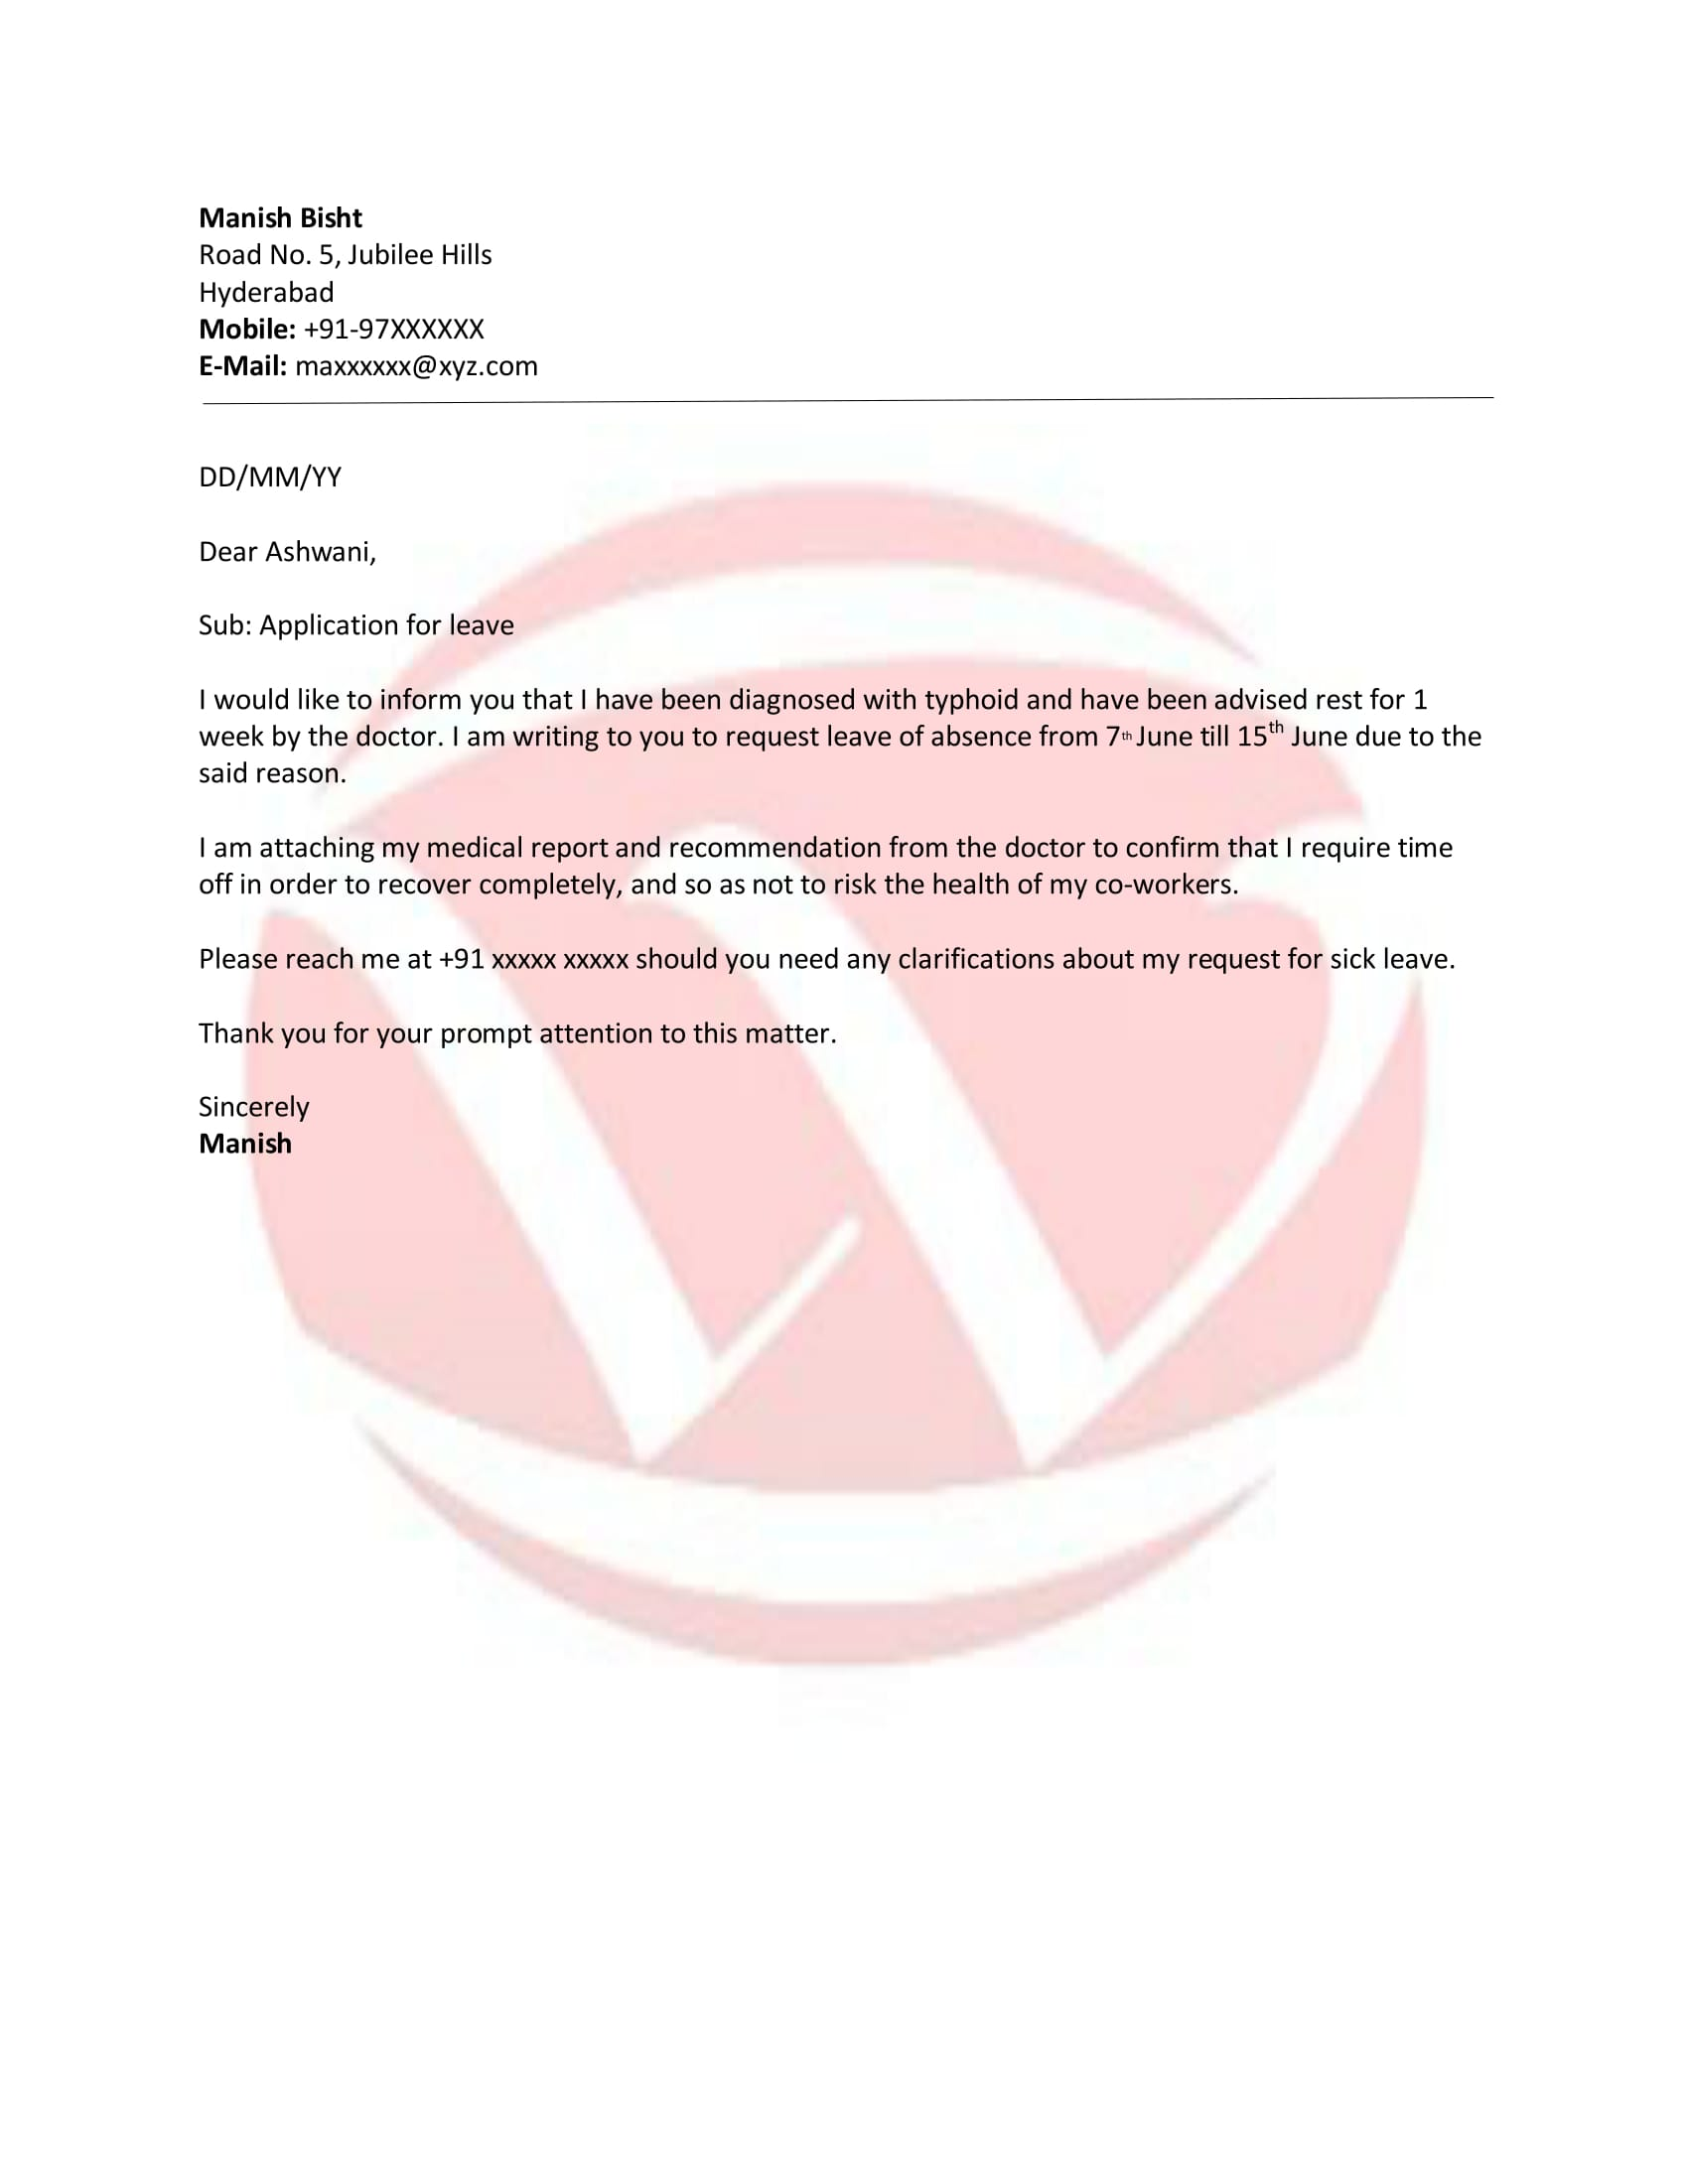 Leave sample letter format download letter format templates leave sample letter spiritdancerdesigns Images